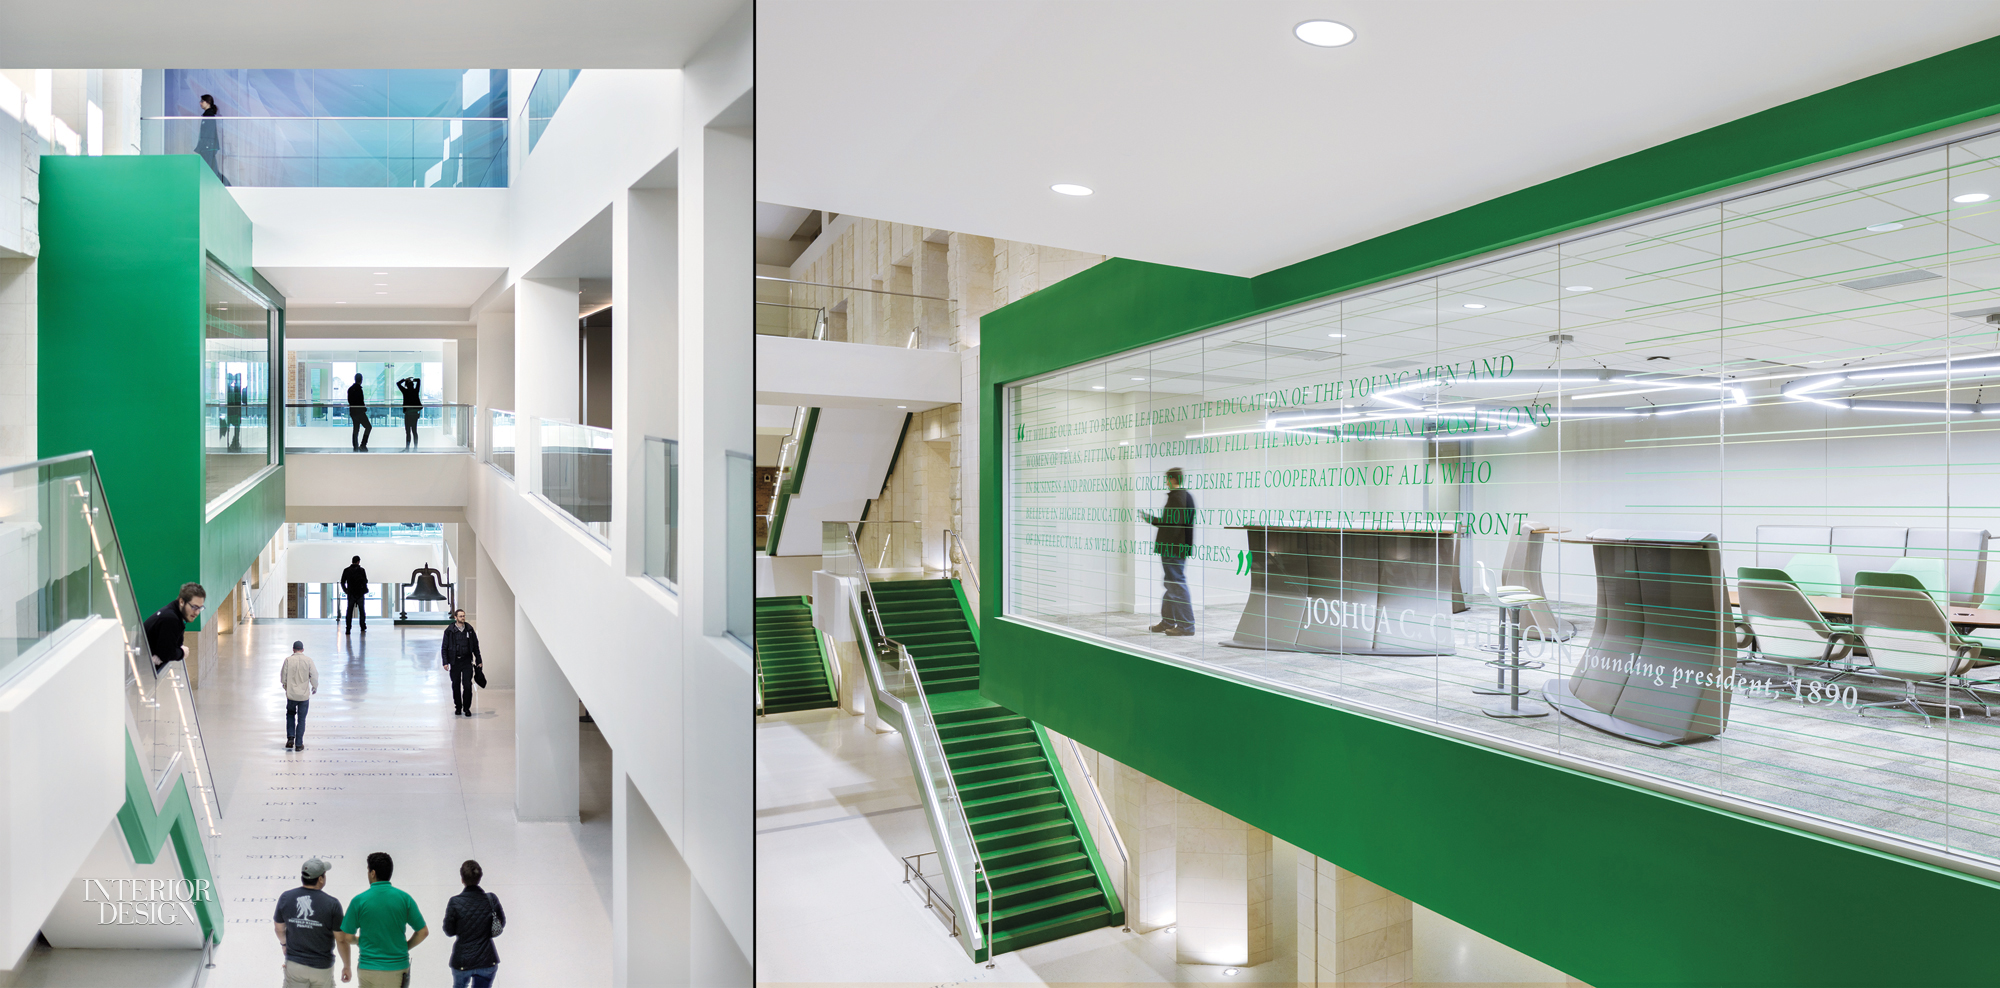 Unt Student Center By Perkins Will 2016 Best Of Year Winner For Mixed Branding Graphics